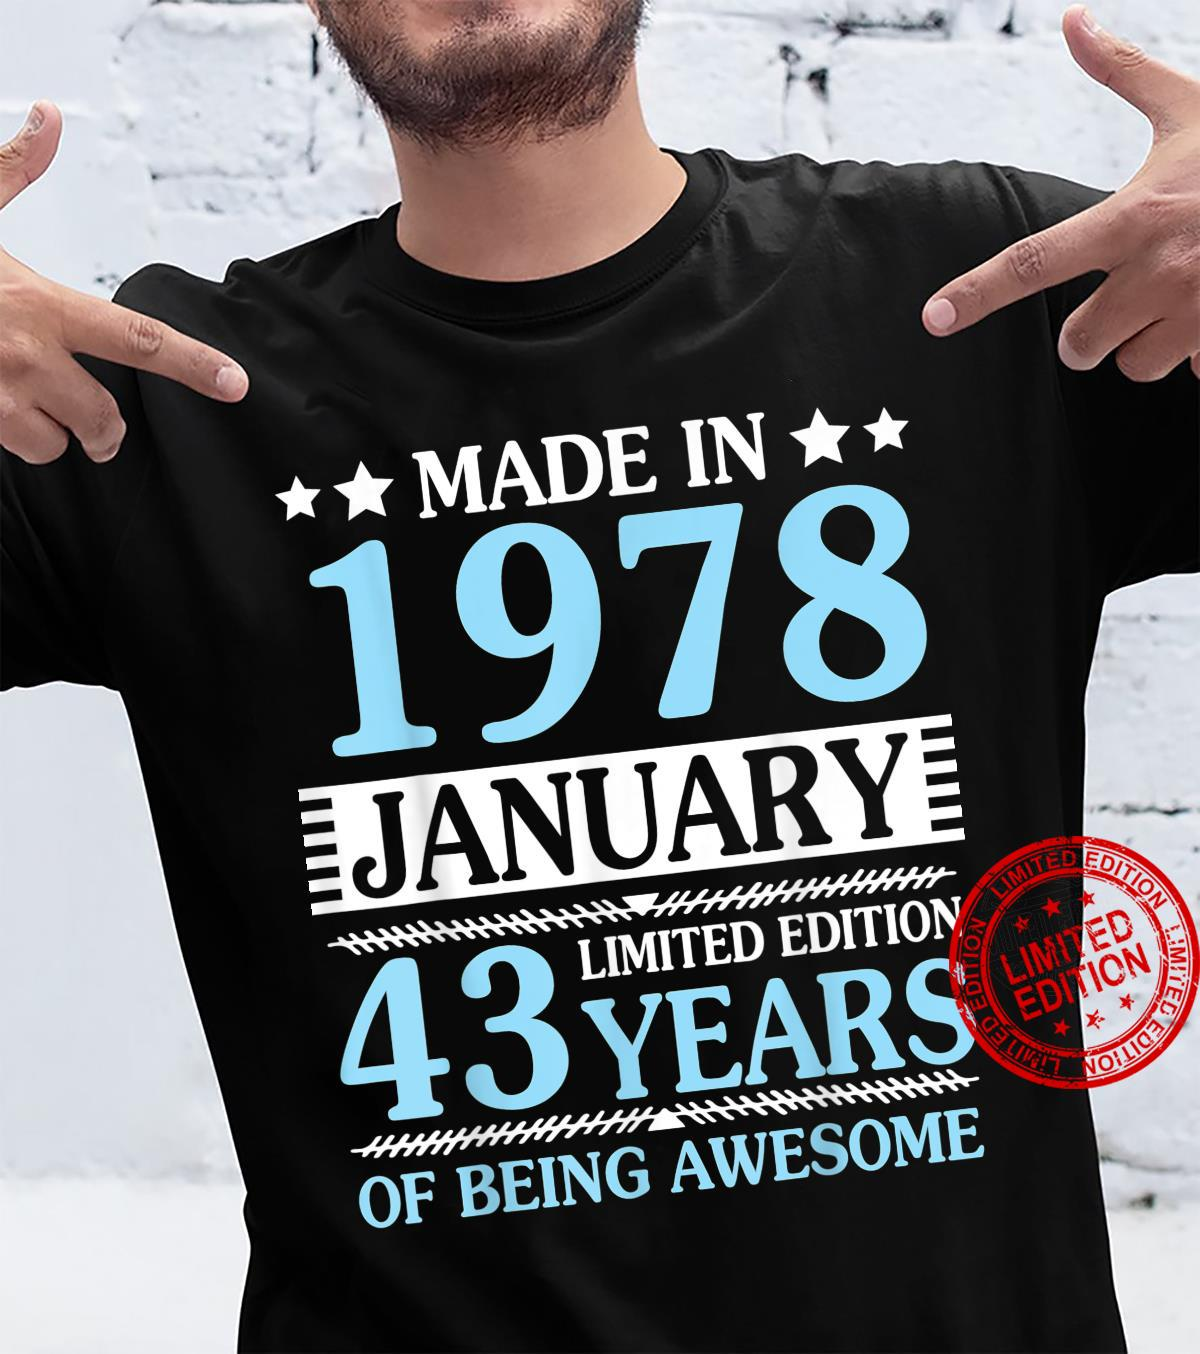 Made In 1978 January Ltd Edition 43 Years Of Being Awesome Shirt